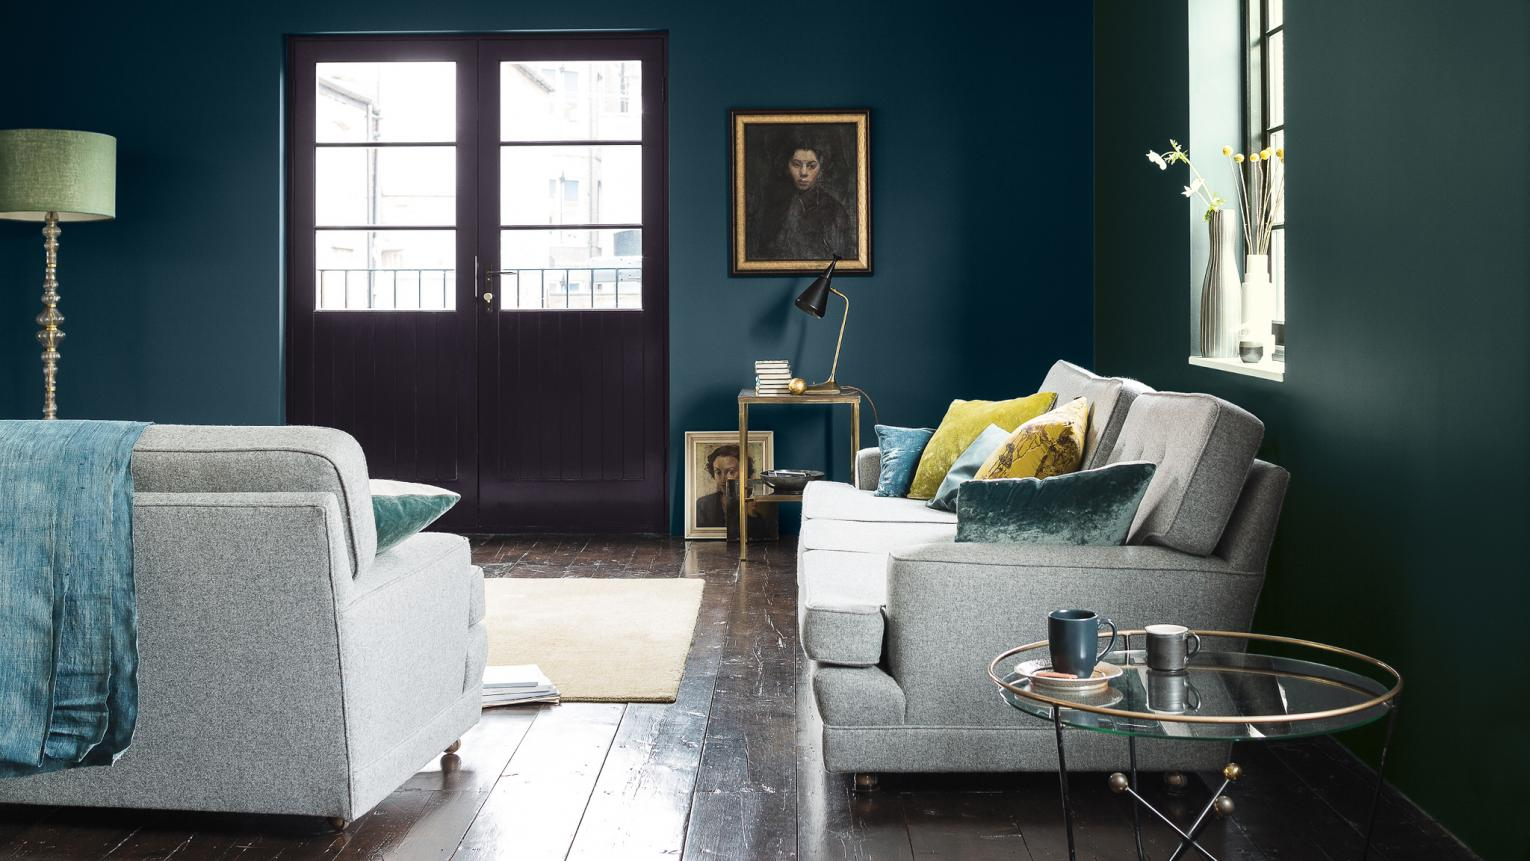 Choosing colours from the darker end of the spectrum is a quick and easy way to add personality to your new home: creating a sophisticated feel minus the designer price tag.